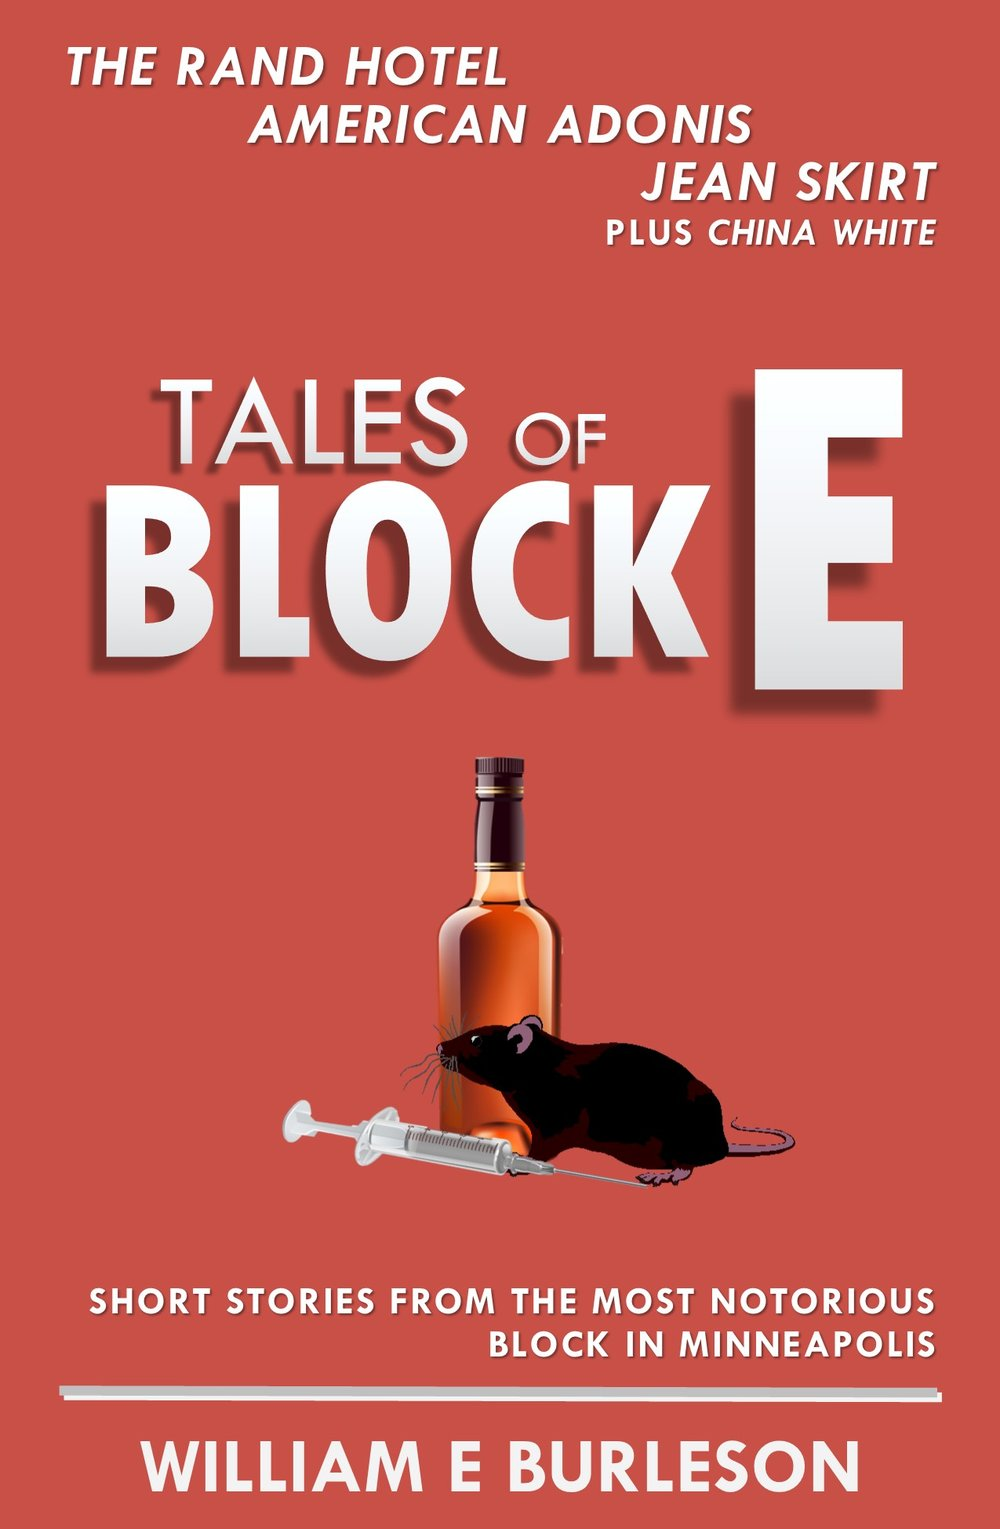 Complete Tales of Block E e-book collection     $2.99 at your favorite ebook retailer